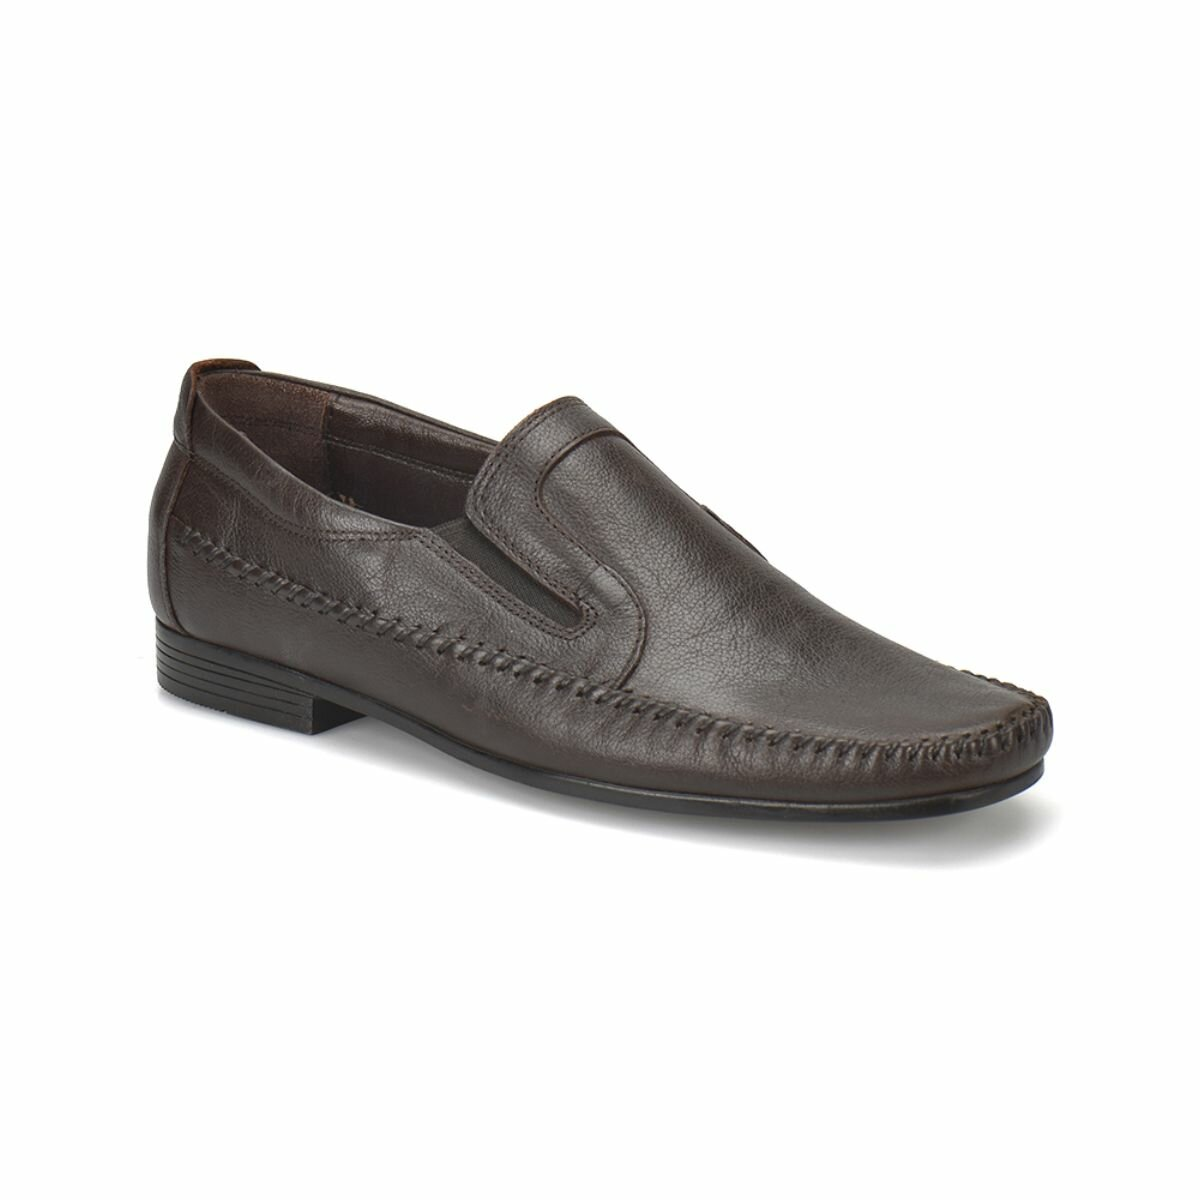 FLO 120 M 1366 Brown Men 'S Classic Shoes Flogart